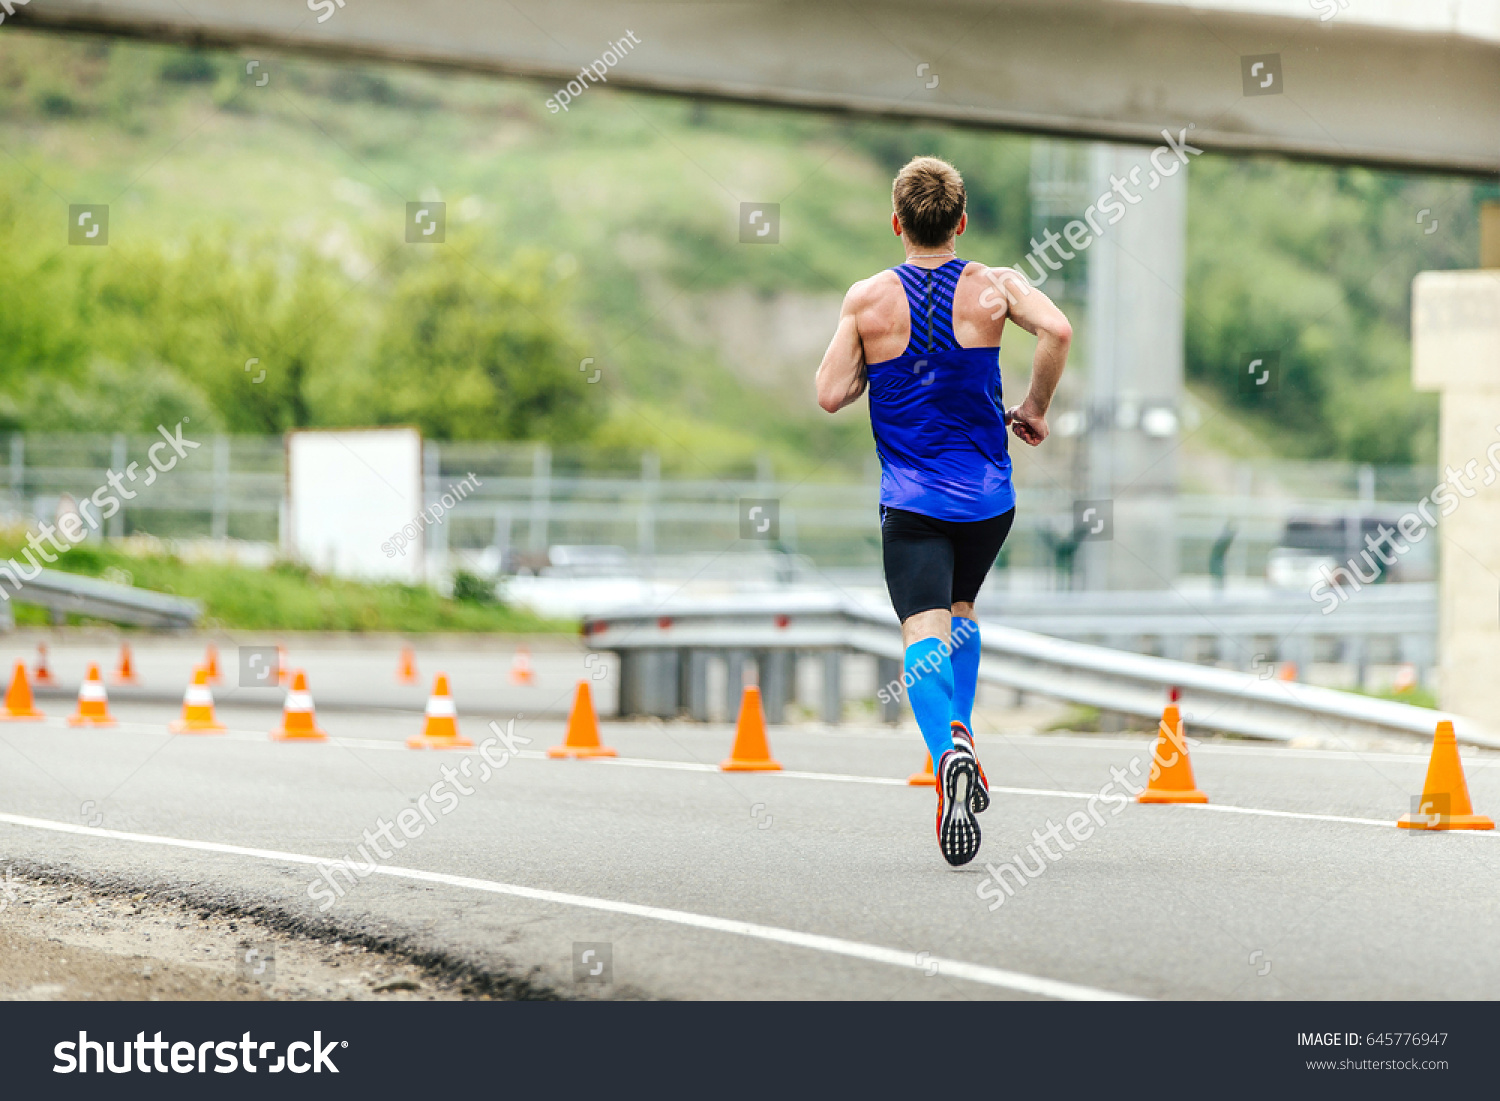 84eca9c375 male runner in compression socks running in road with traffic cones safety